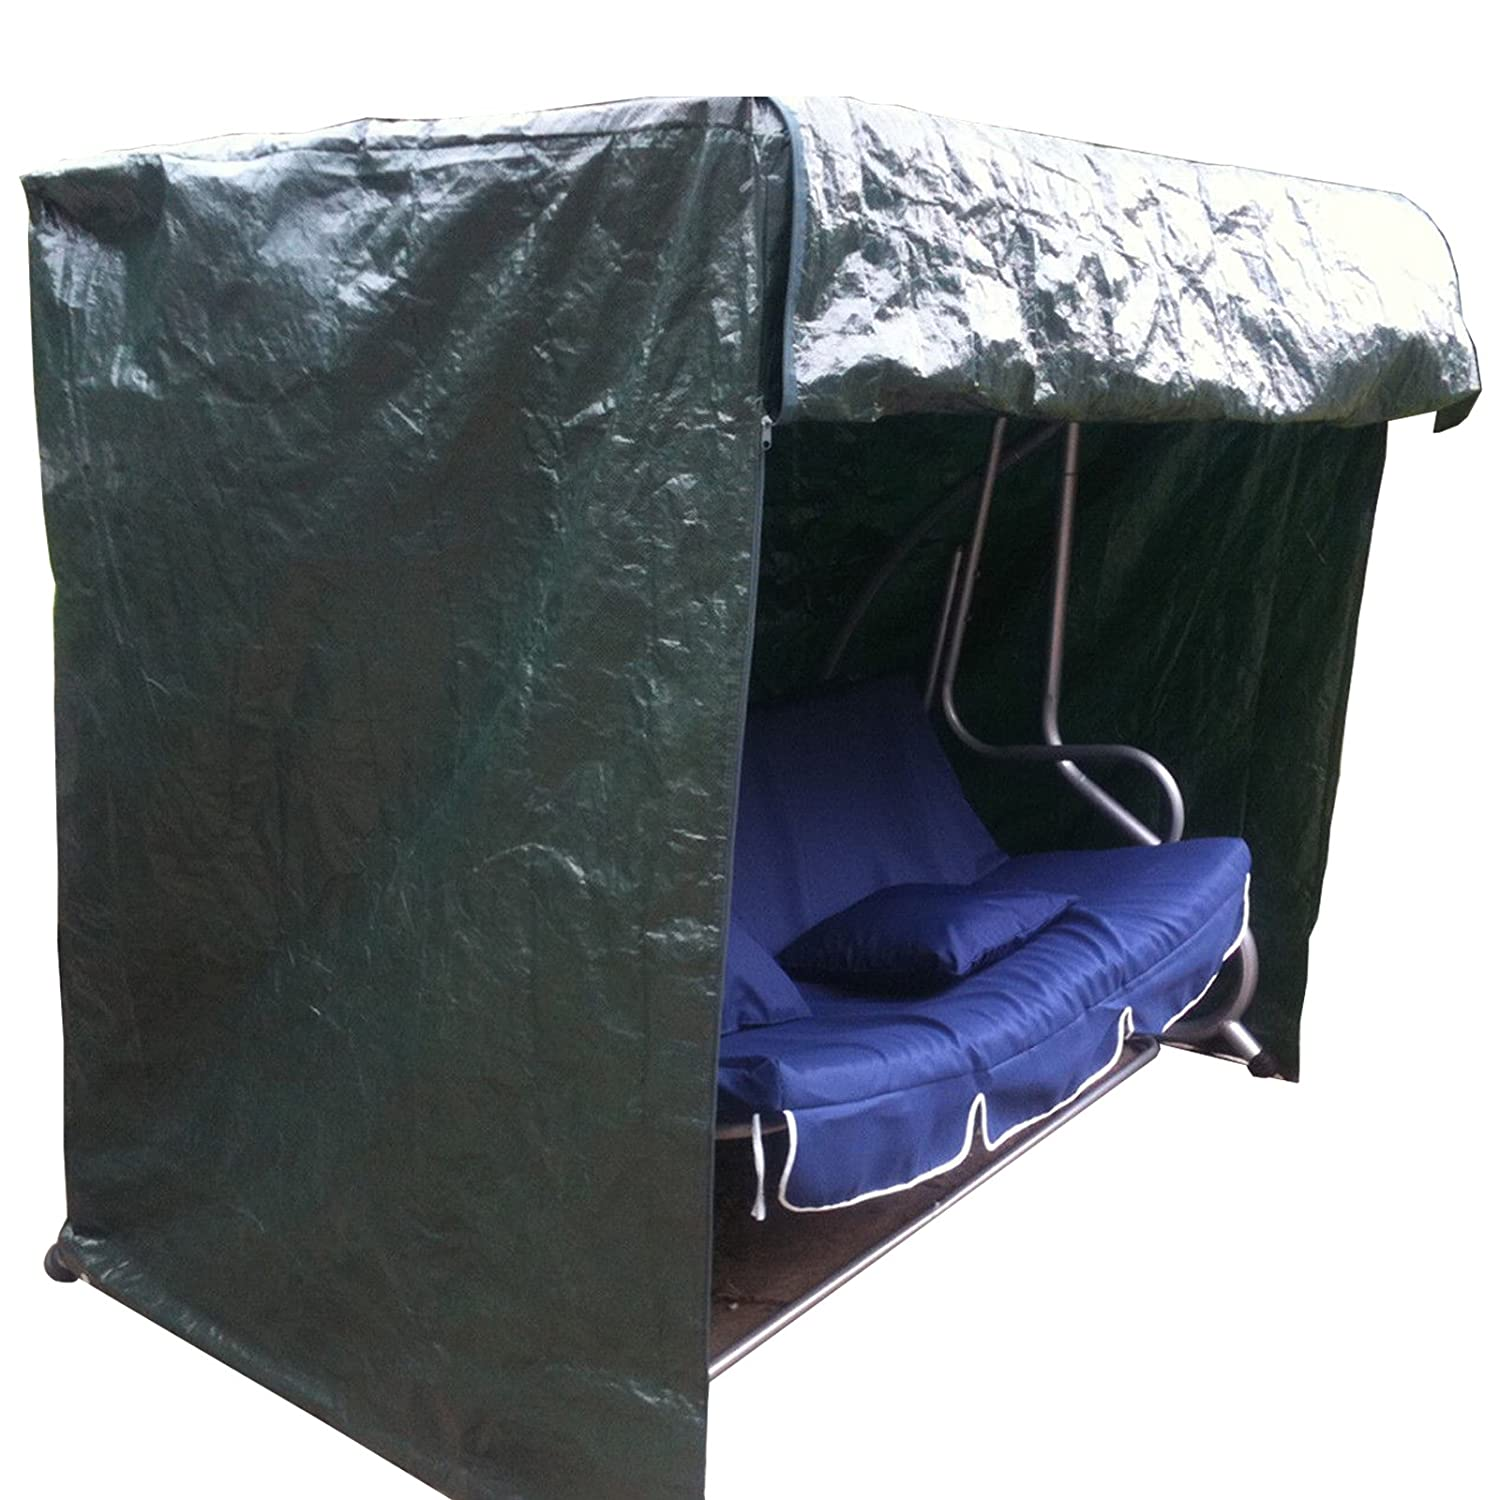 Dirty Pro Tools™ Garden hammock 3 seater weather cover shower proof